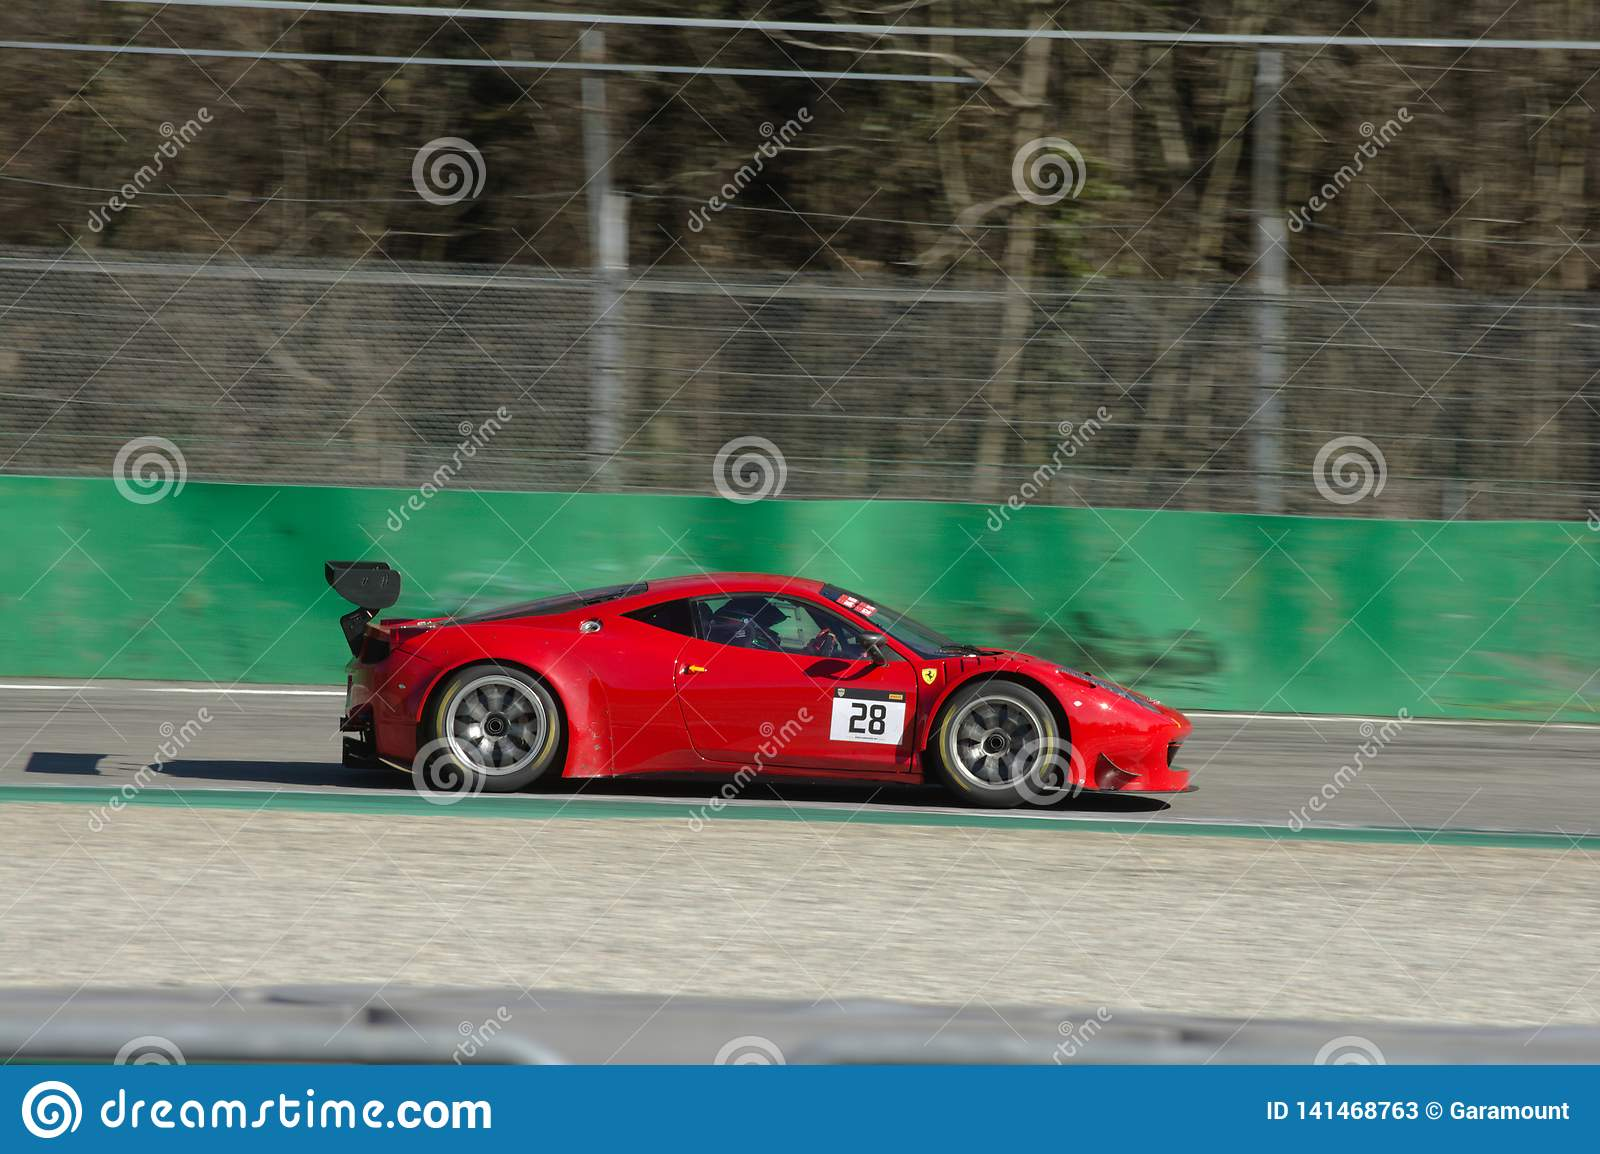 Ferrari 458 Gt3 On Track At The Monza Circuit Editorial Stock Photo Image Of Monza Control 141468763